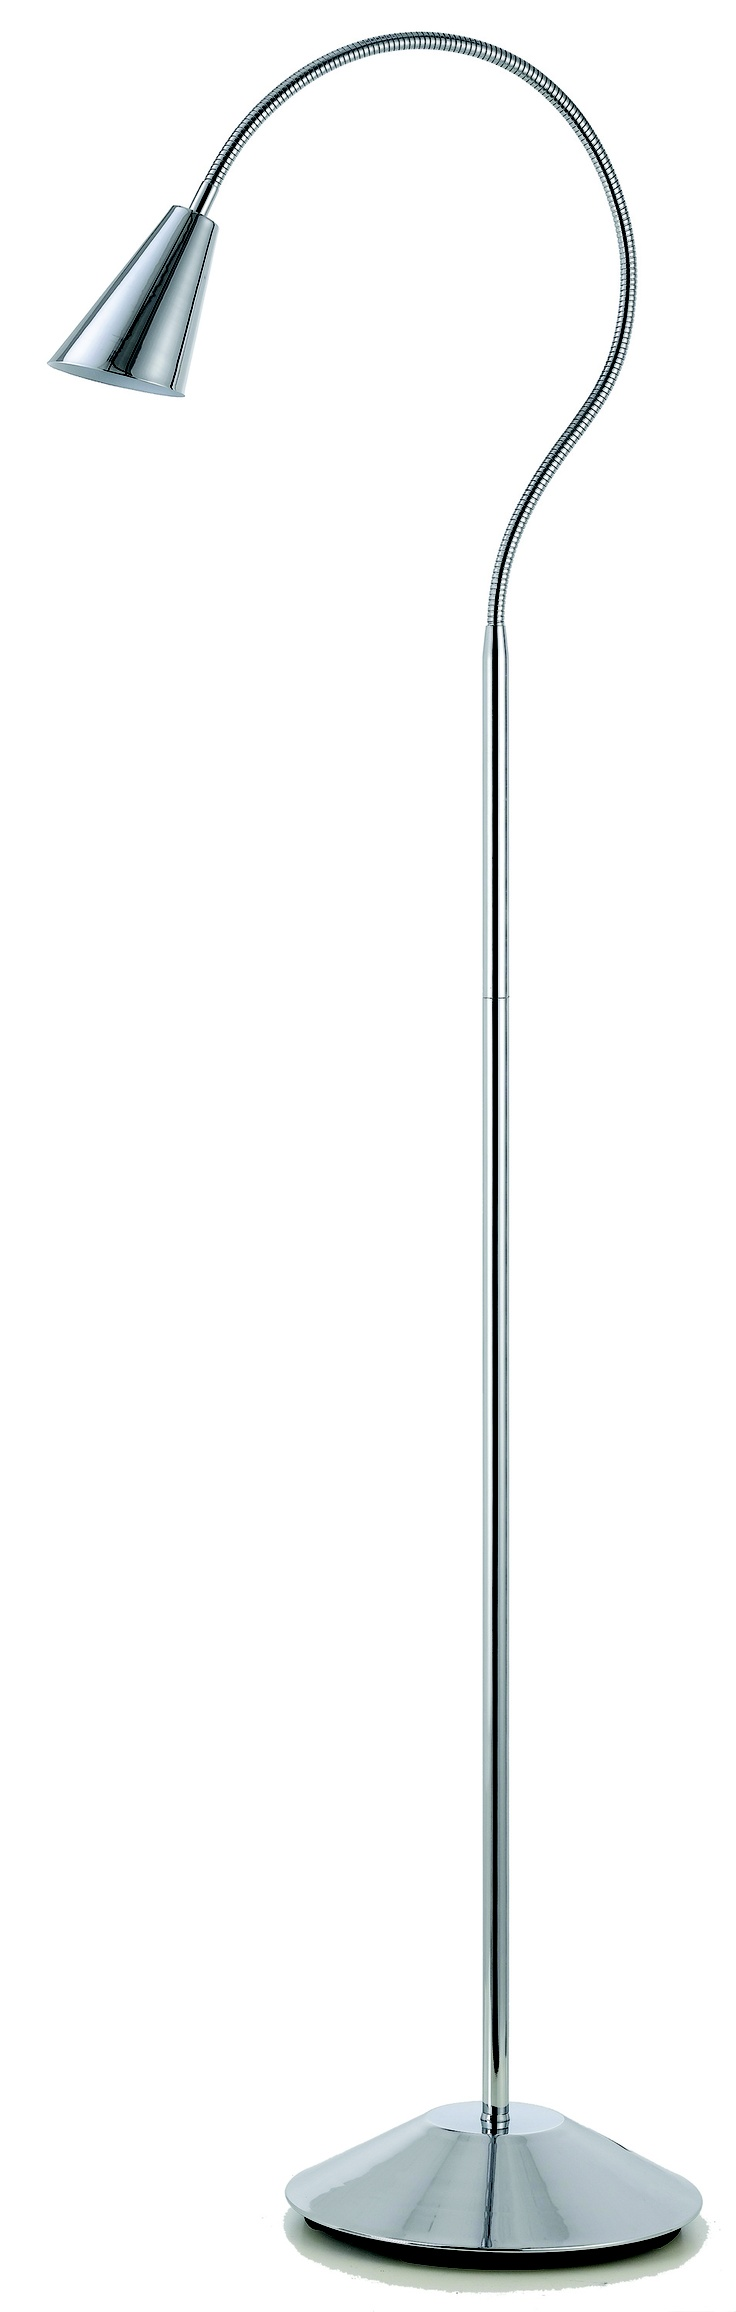 Abra Floor Lamp   Available in various colours.